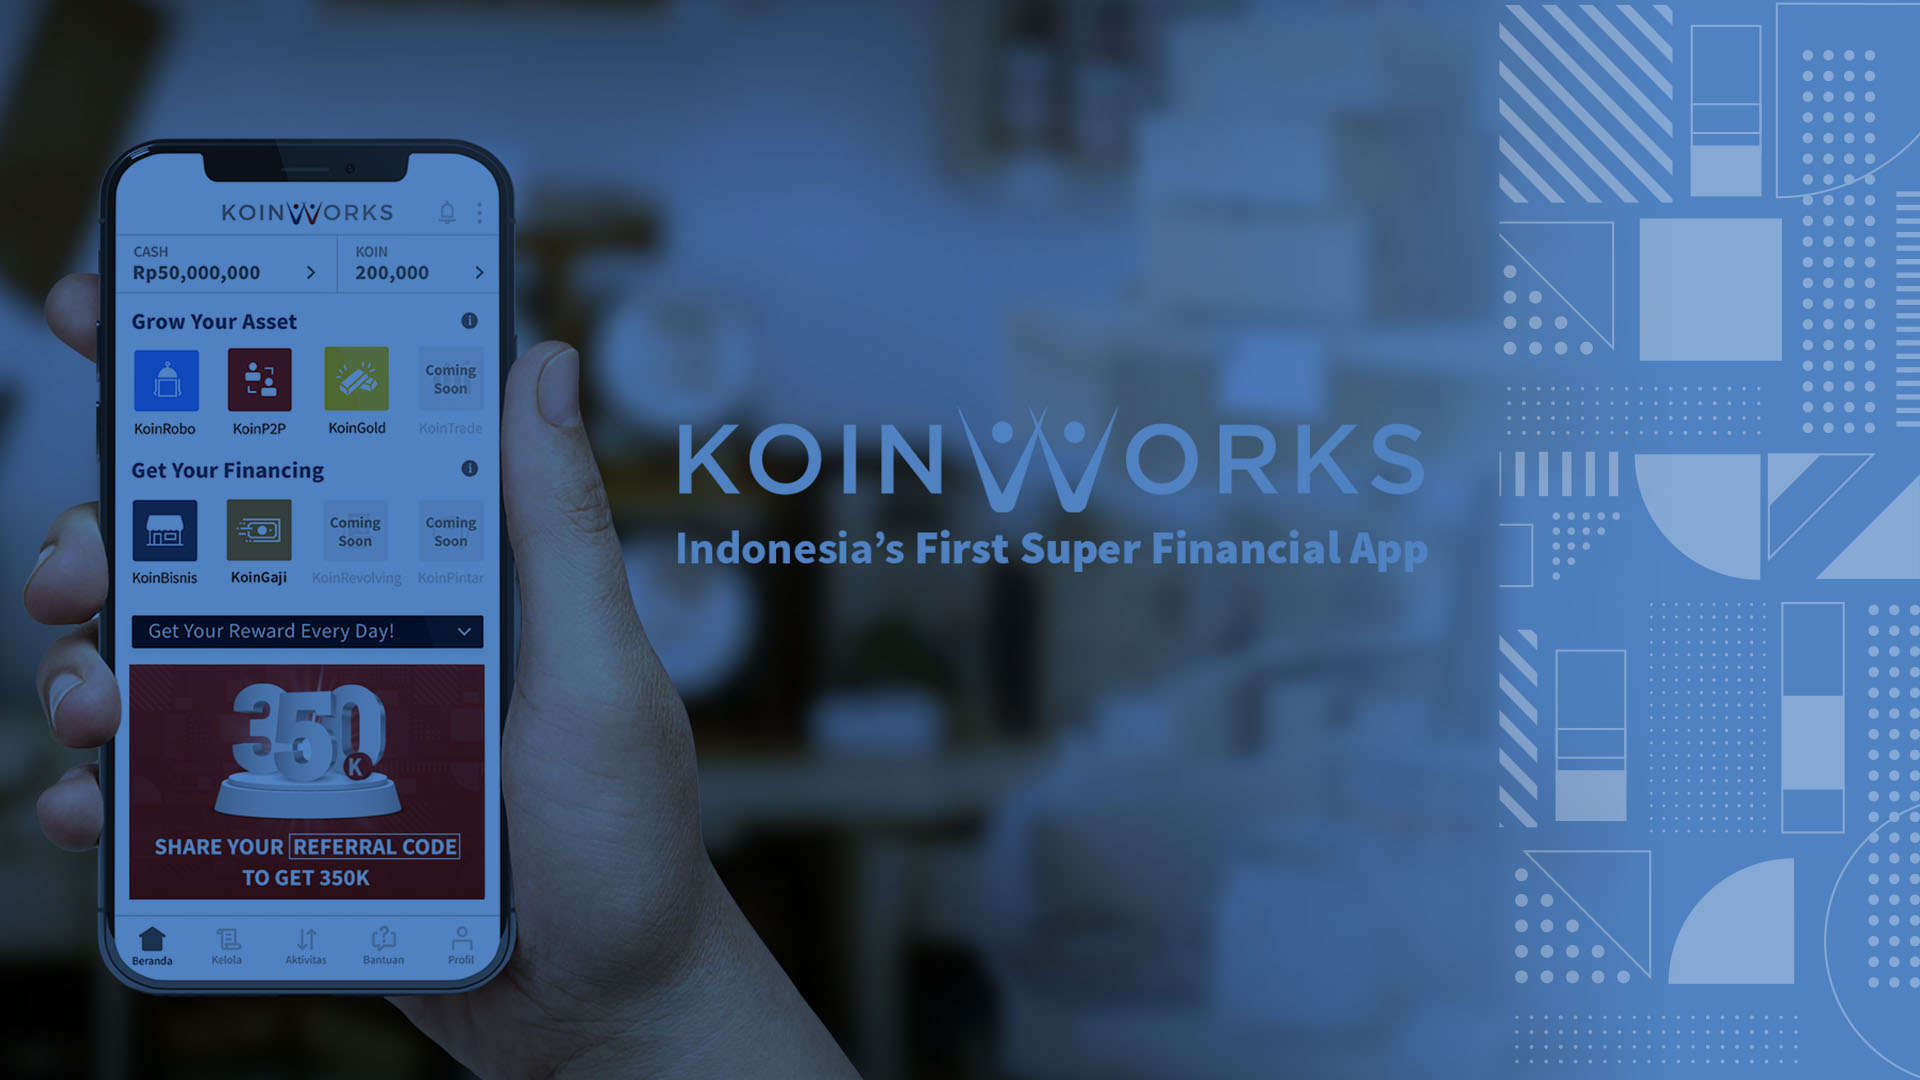 Super Financial App